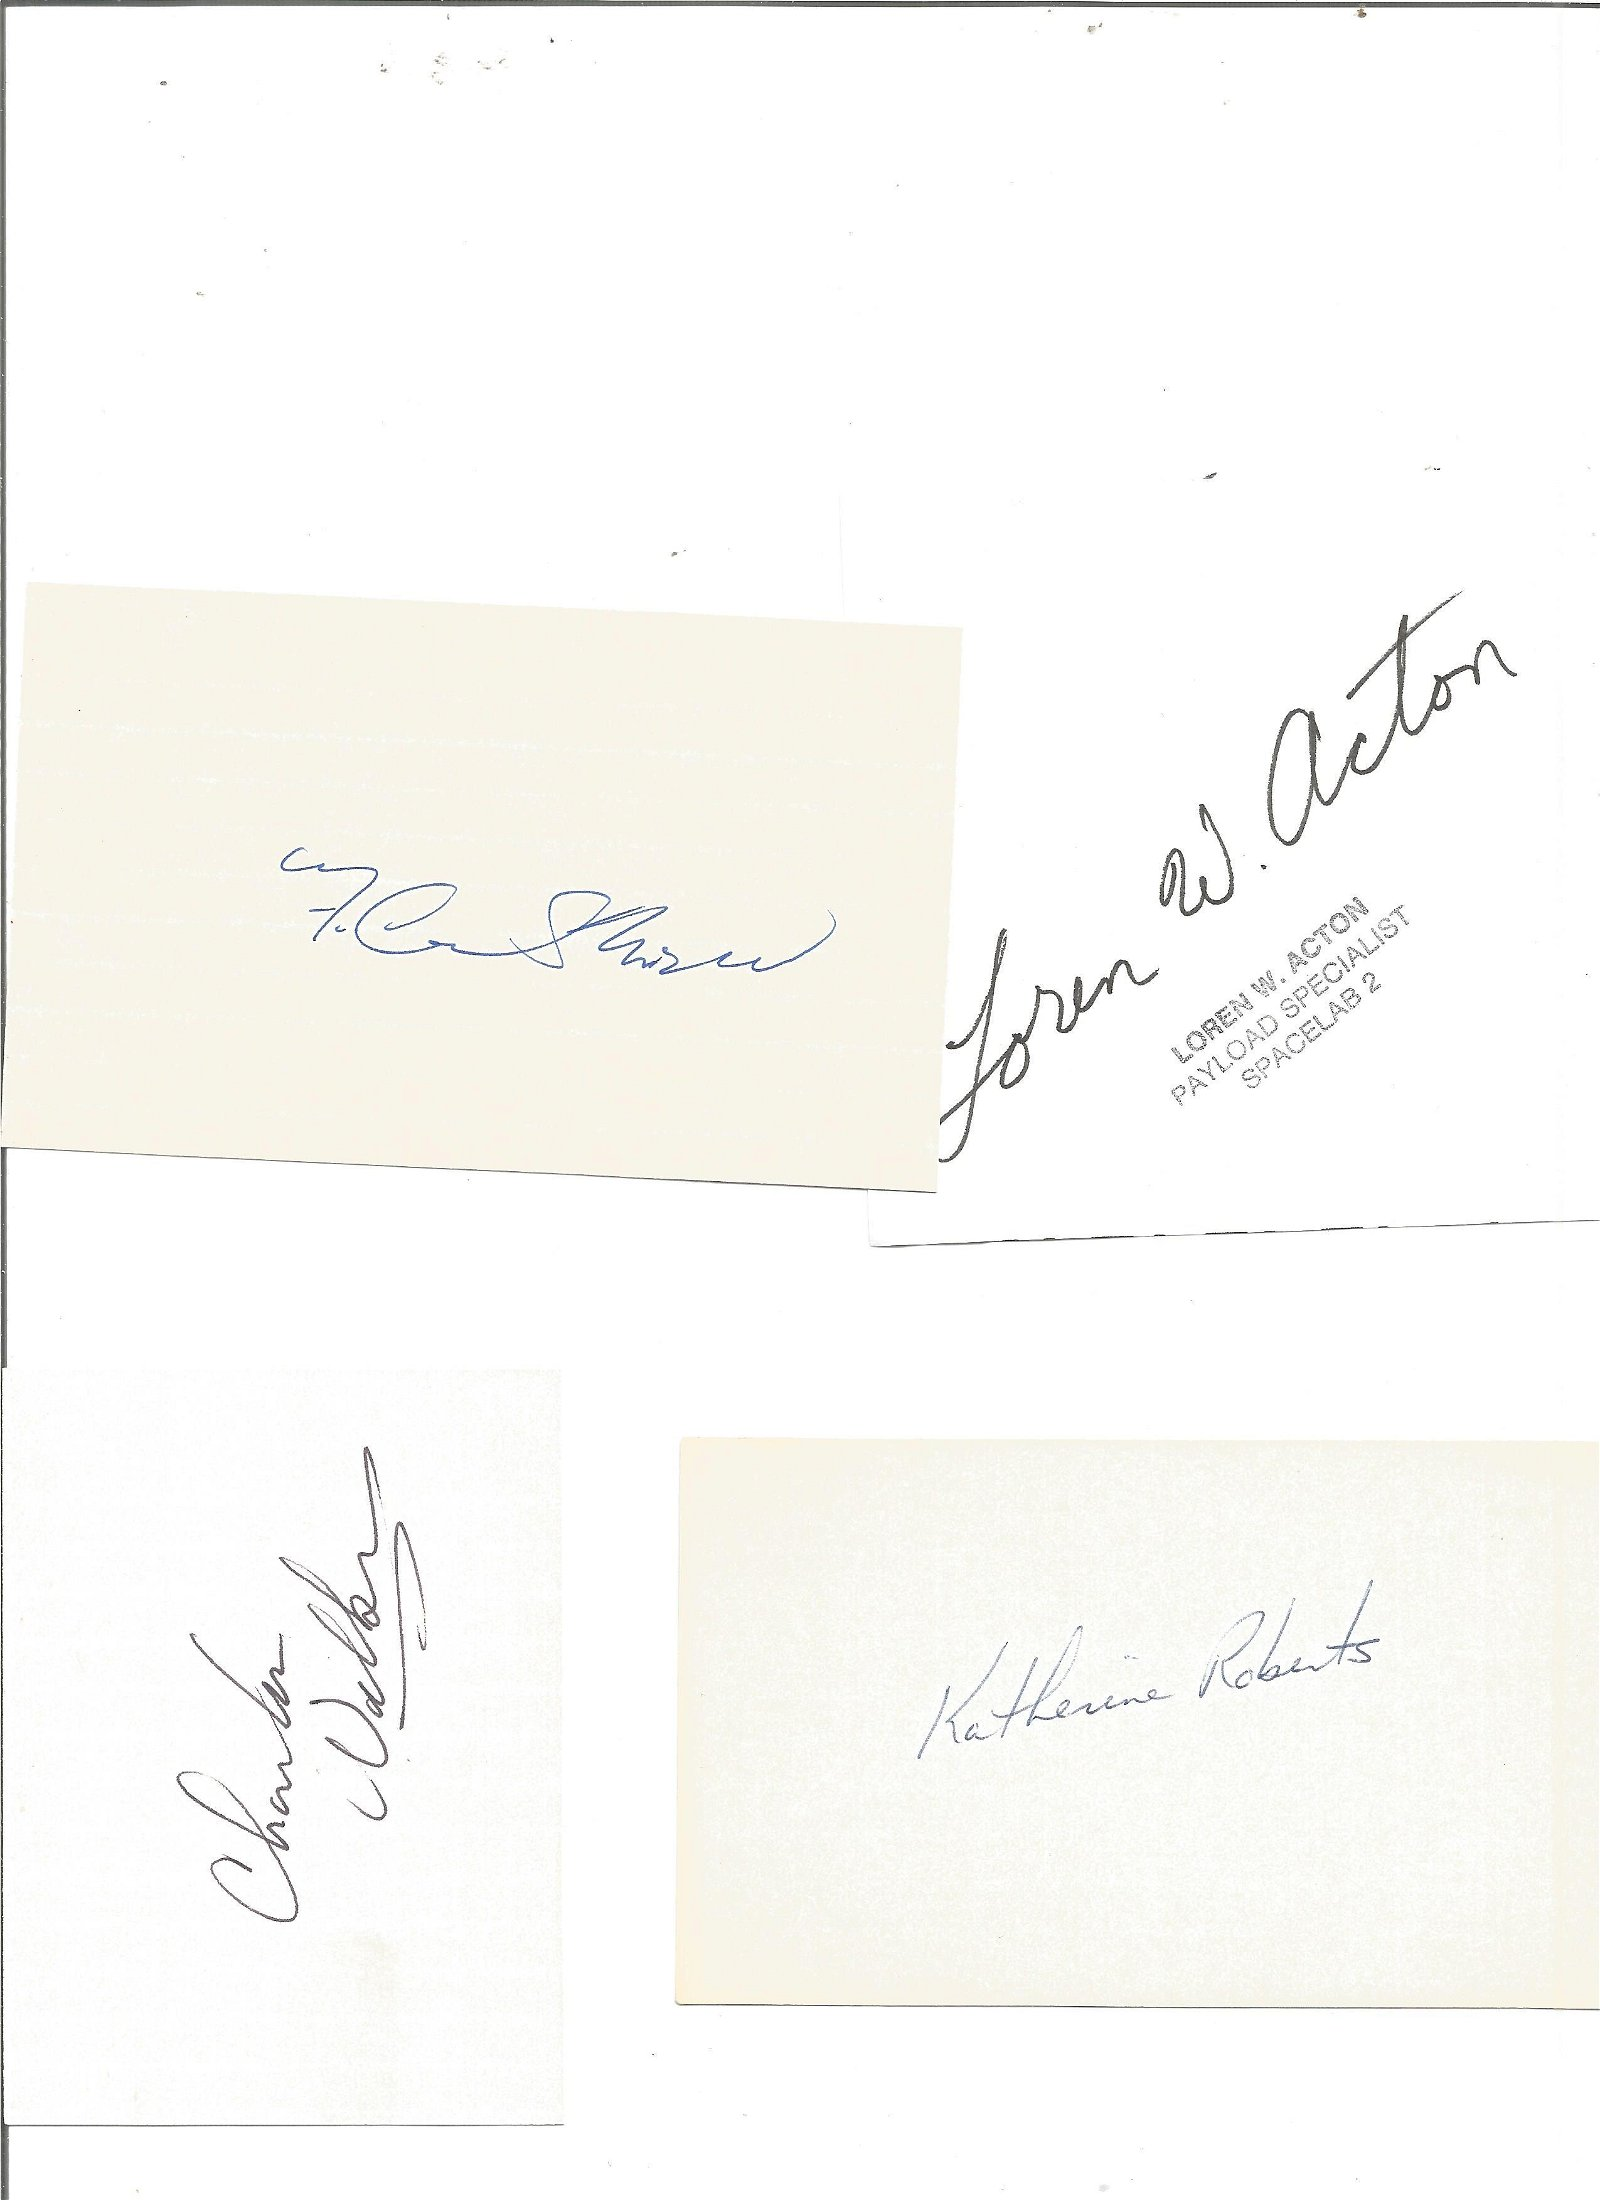 US Fighter and test pilots autographs P Hoag, Milt